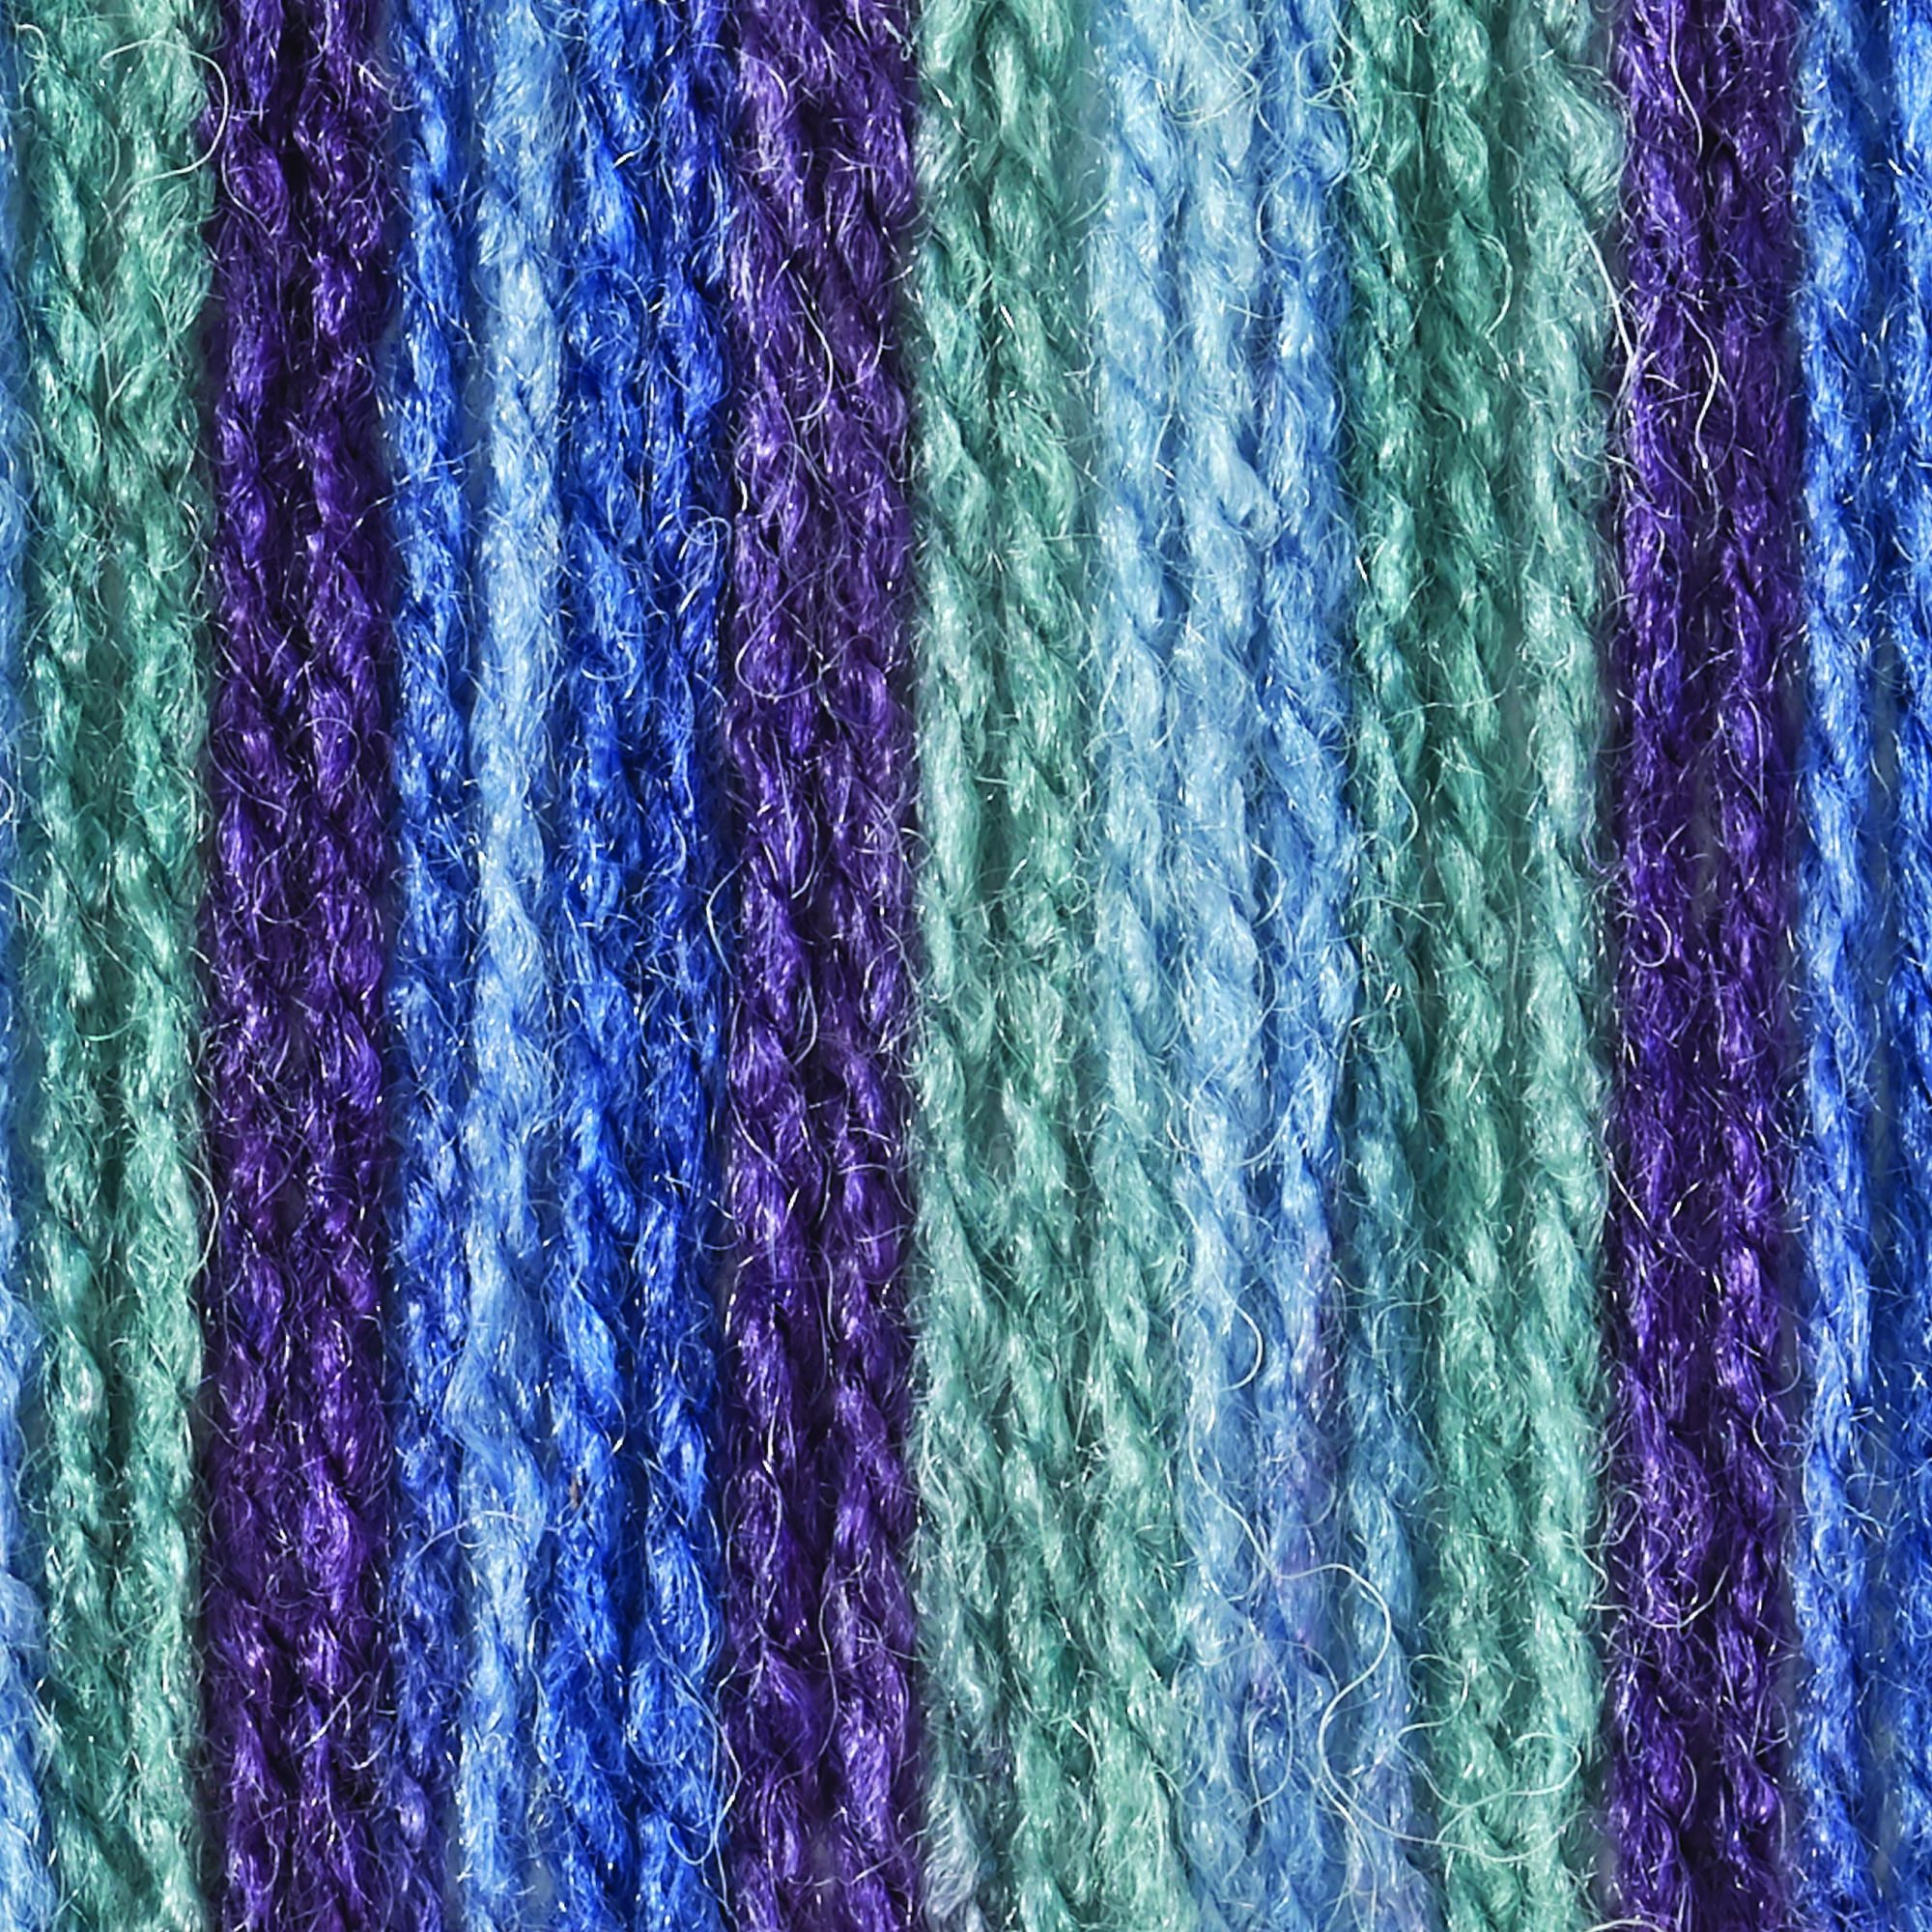 Patons  Decor Yarn - (4) Medium Worsted Gauge  - 3.5oz -  Mountain Top  -   For Crochet, Knitting & Crafting by Patons (Image #3)